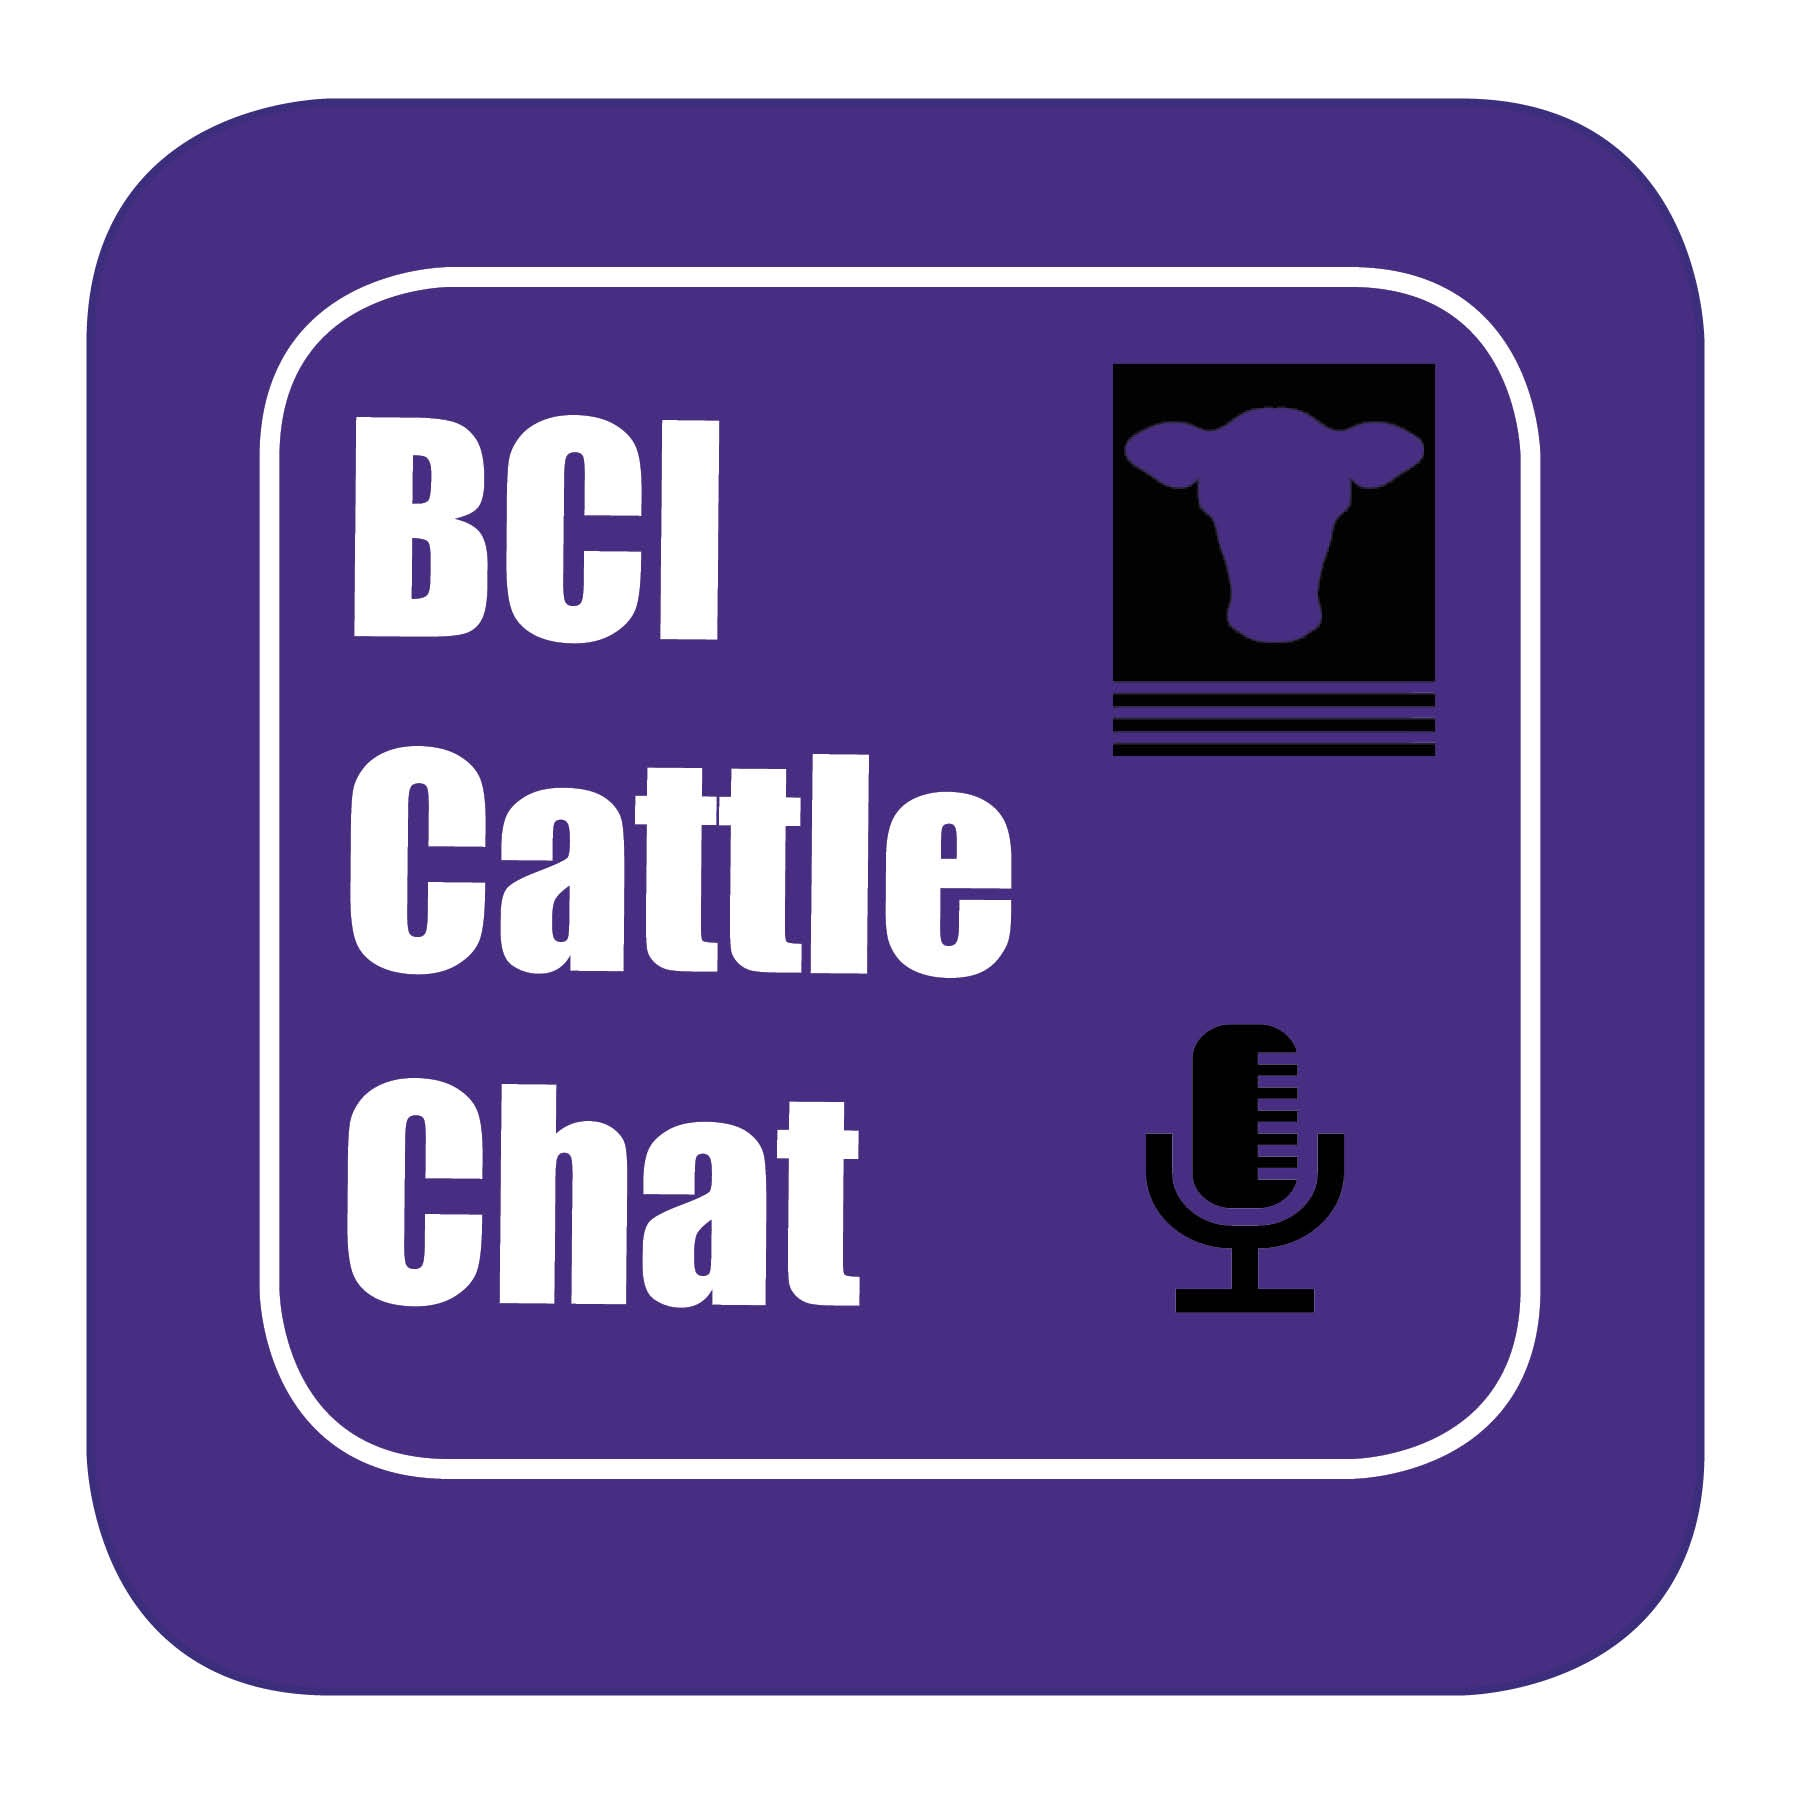 BCI Cattle Chat - Episode 13